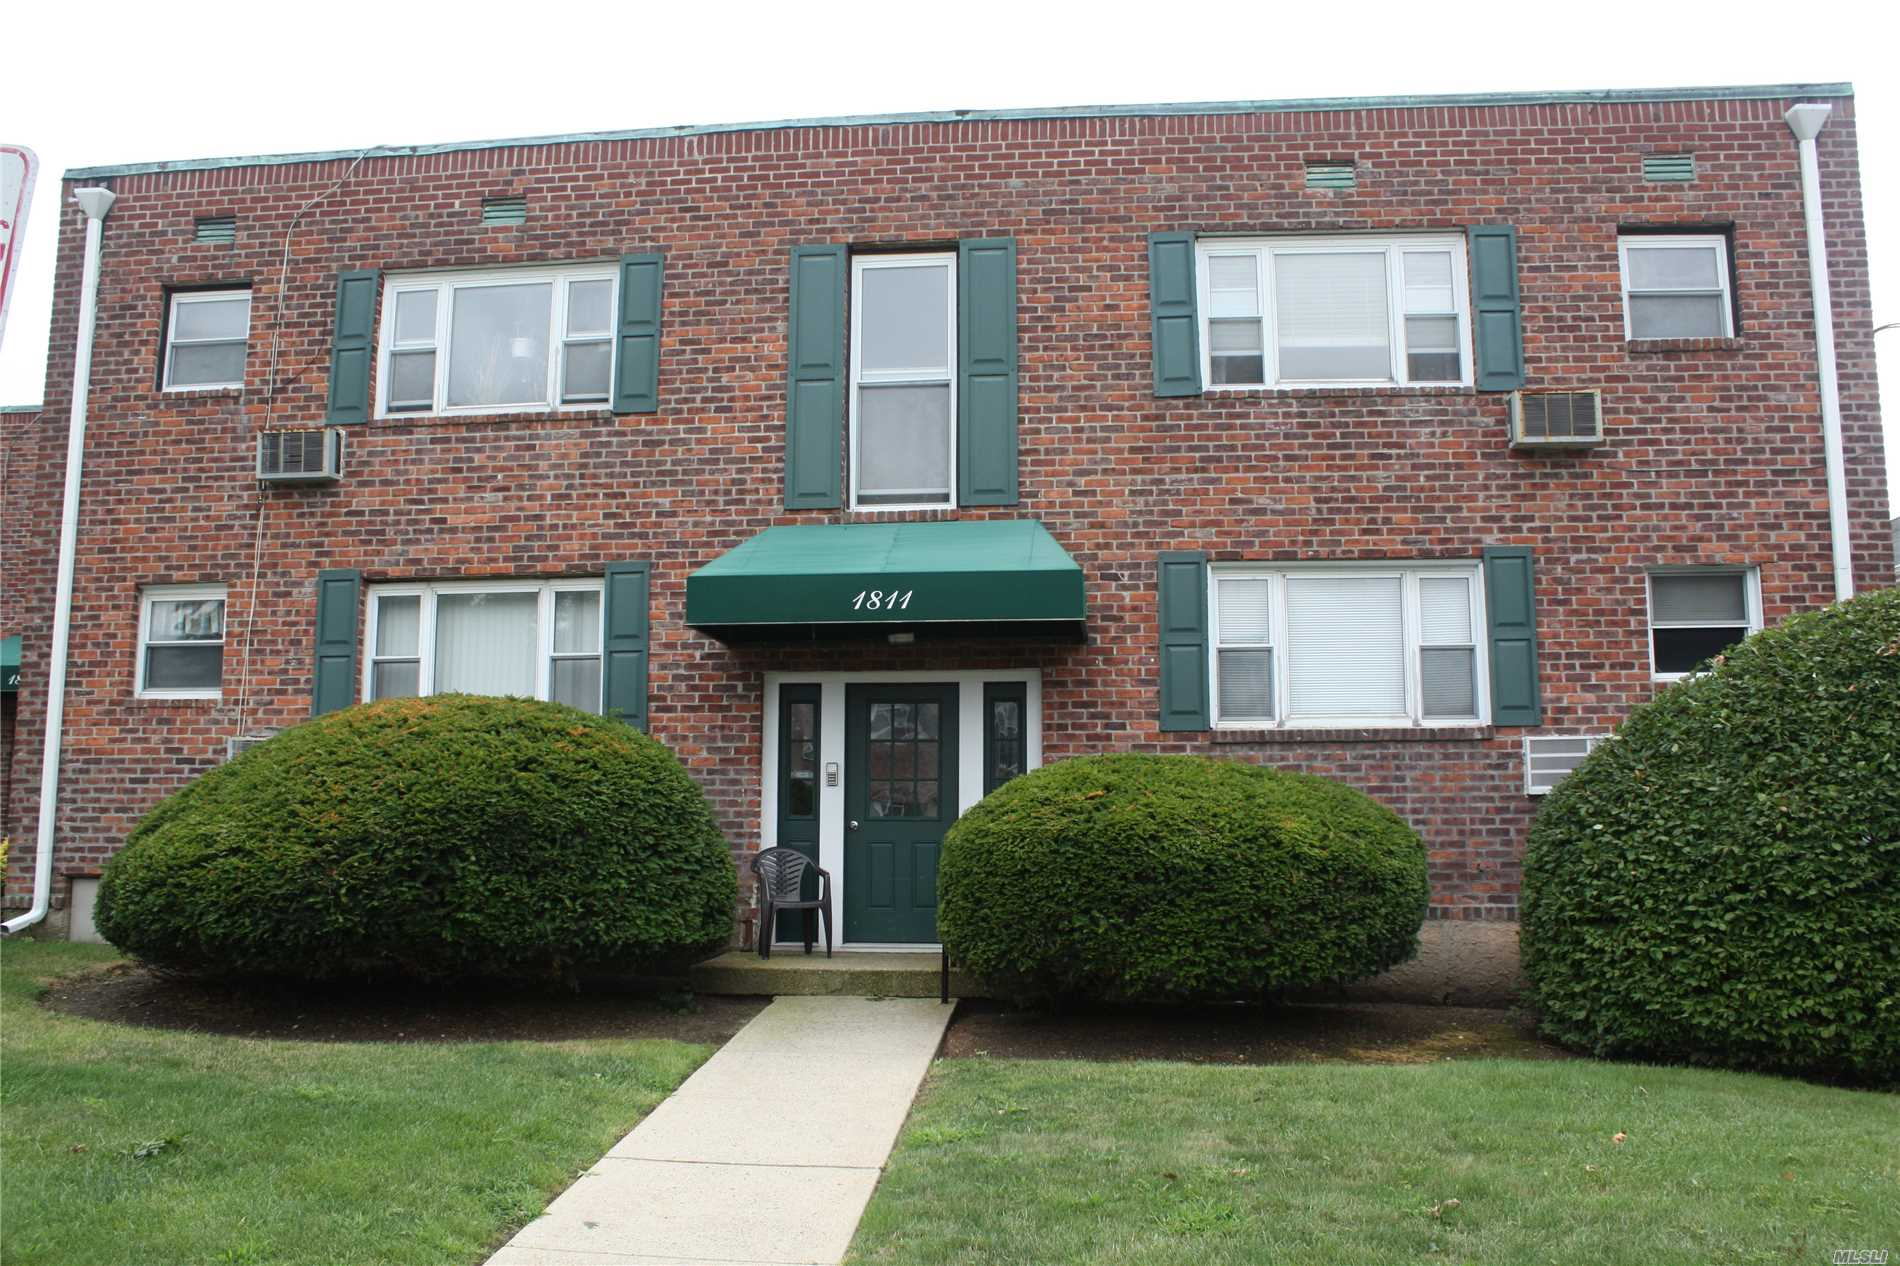 Spacious Updated First Floor 1 Br Co-Op In The Village Of Valley Stream.Newly Updated Kitchen & Bath, Wood Floors, Large Closets, Ss Appliances, Granite, Ceiling Fans, Hardwood Floors, Clean & Move In Ready On Site, Laundry Room. Easy Access To Shopping Ss Parkway Schools Pack You Bags And Move Right In!